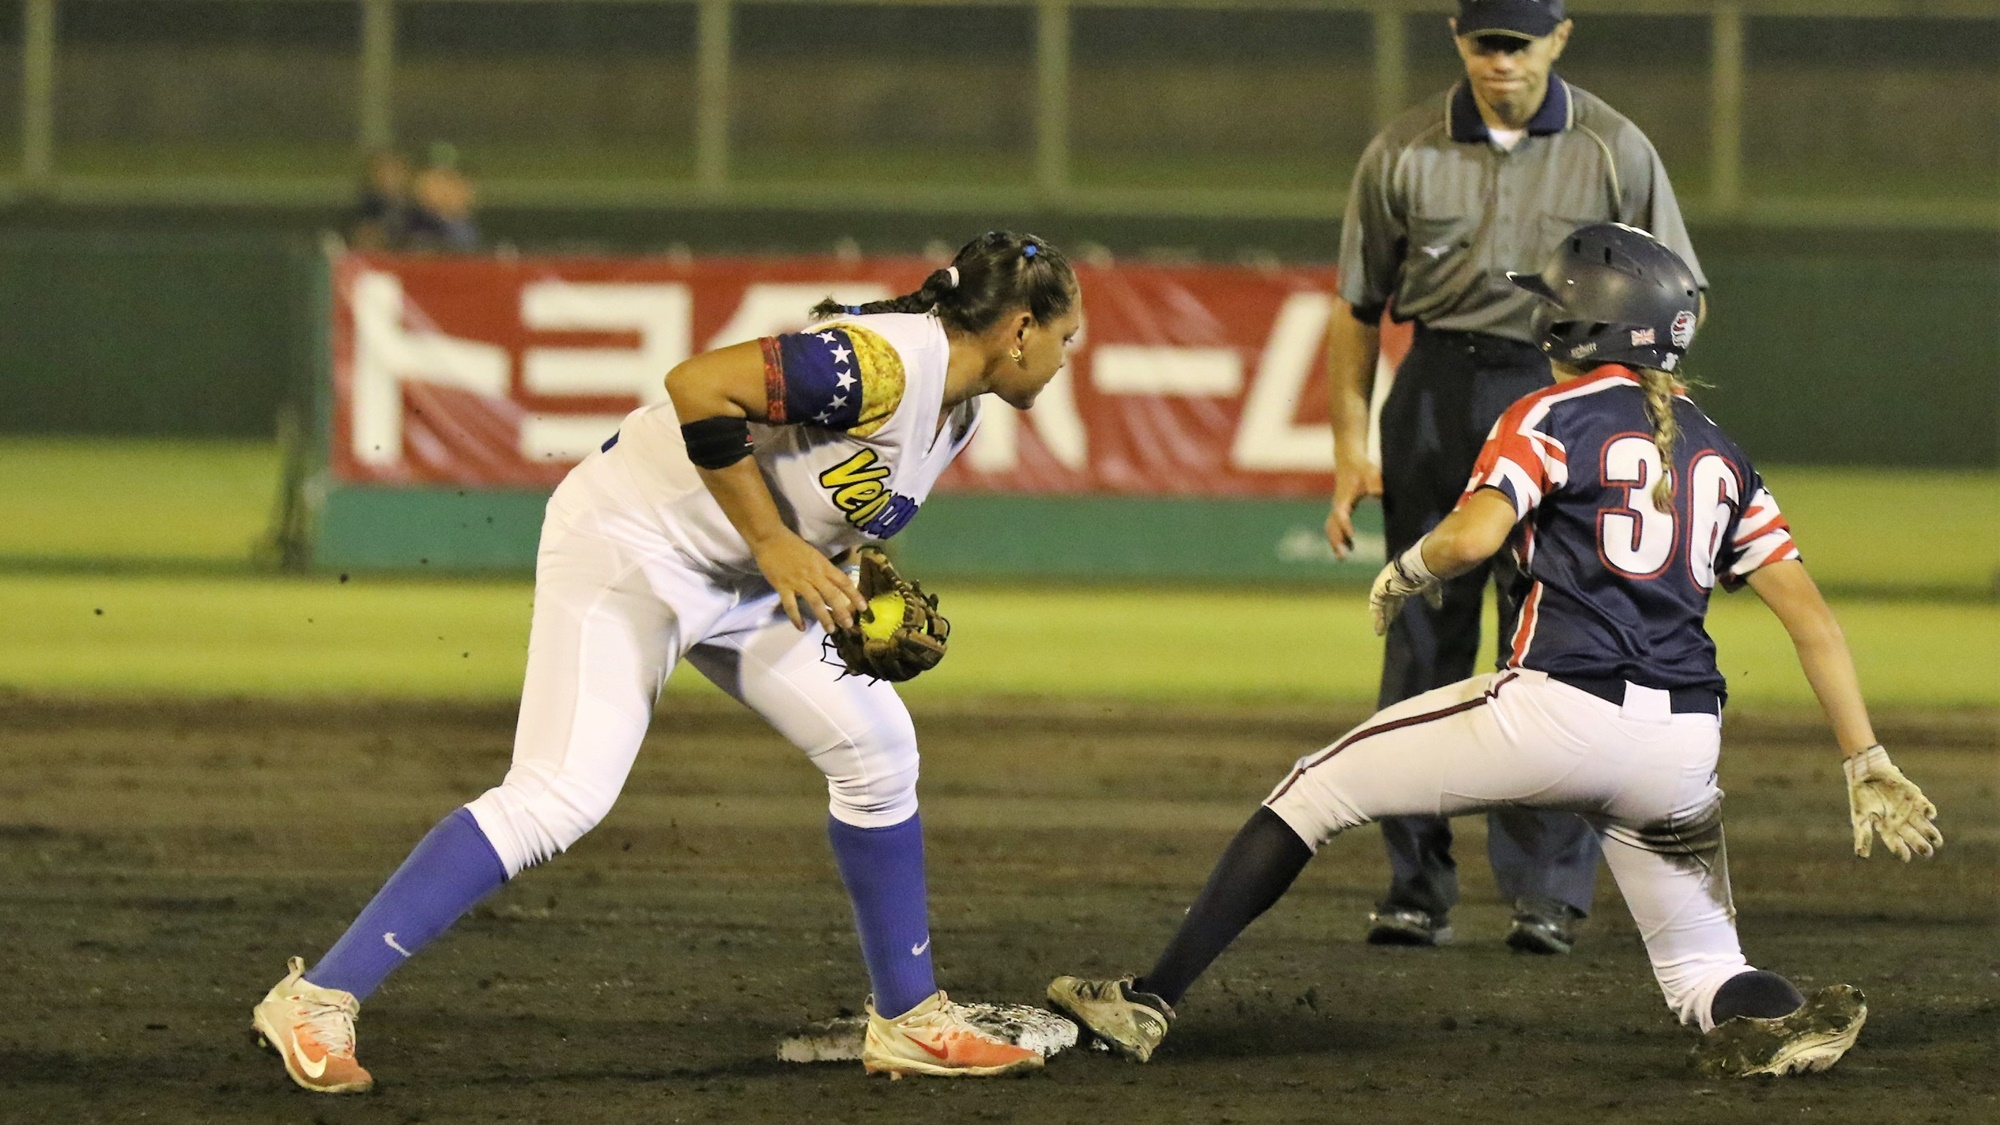 Kendyl Scott avoids a tag by Denisse Fuenmayor